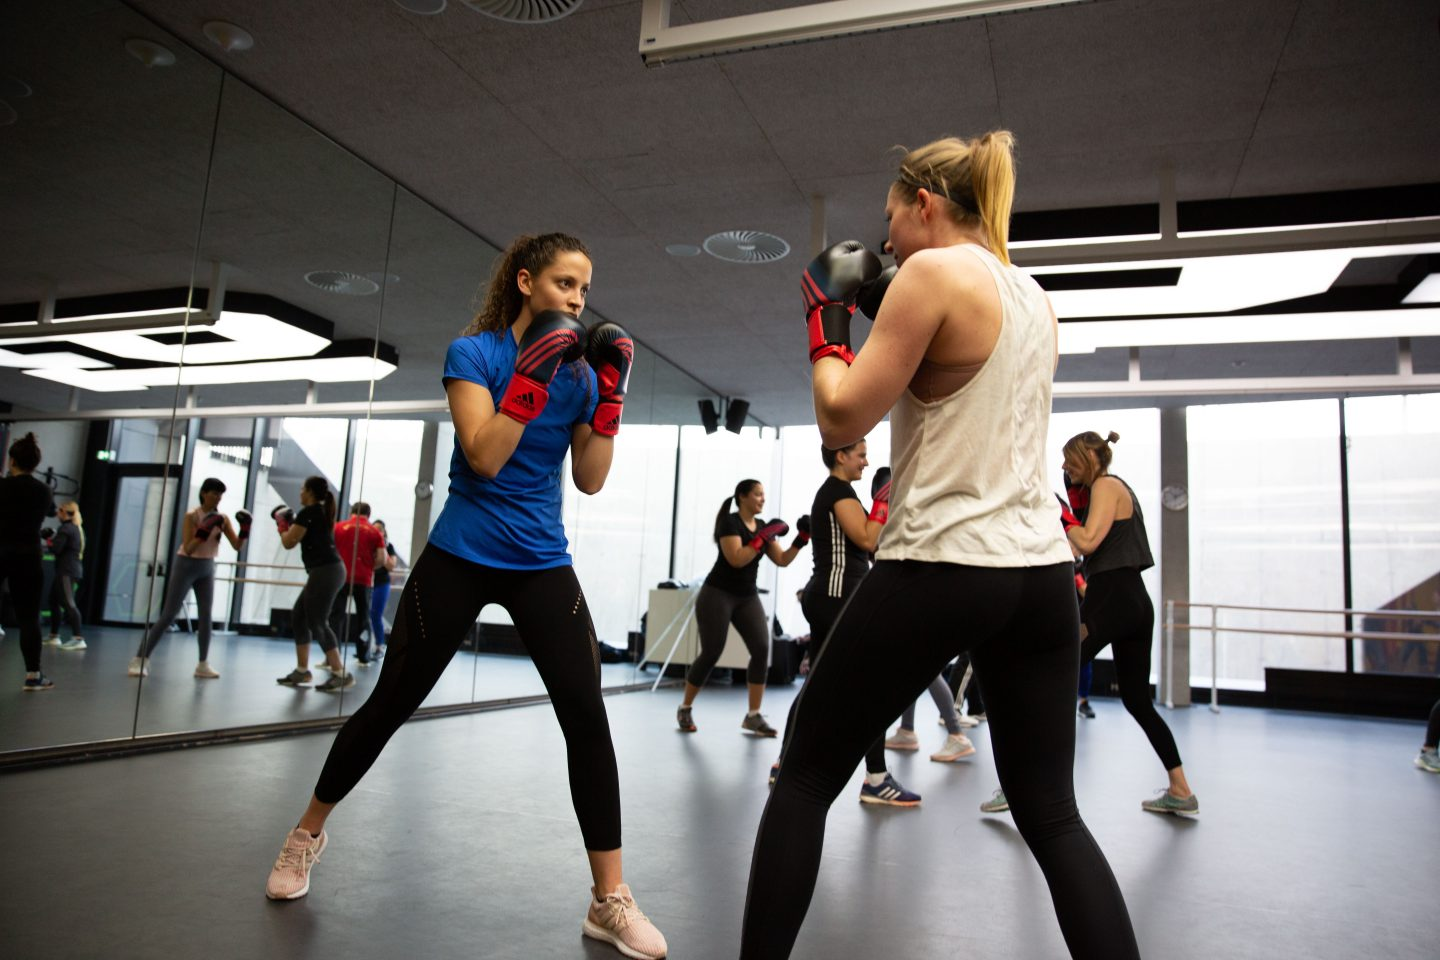 two women boxing in a female boxing class